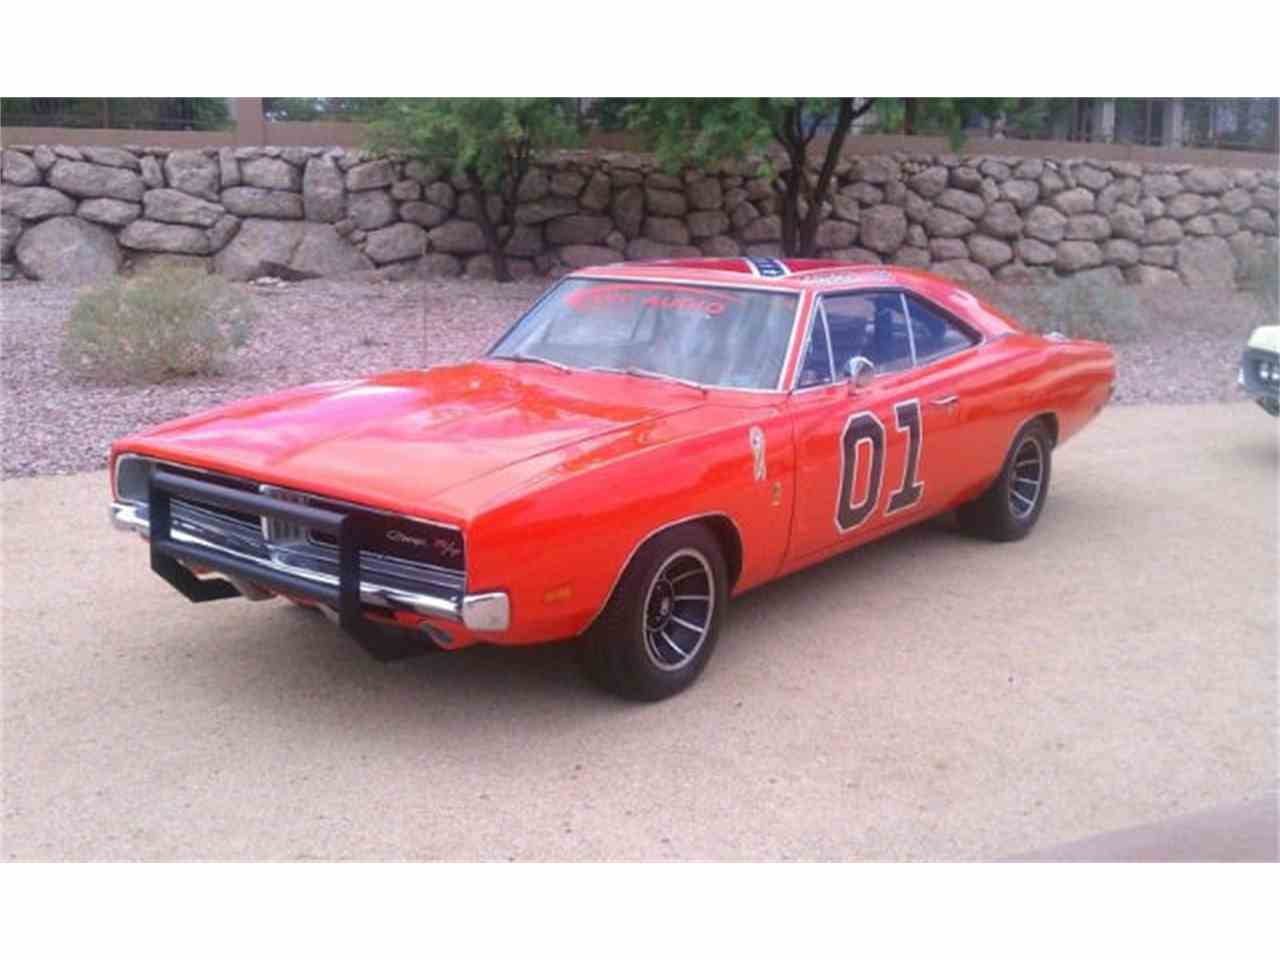 Large Picture of 1969 Charger located in North Carolina - $150,000.00 - BGPN